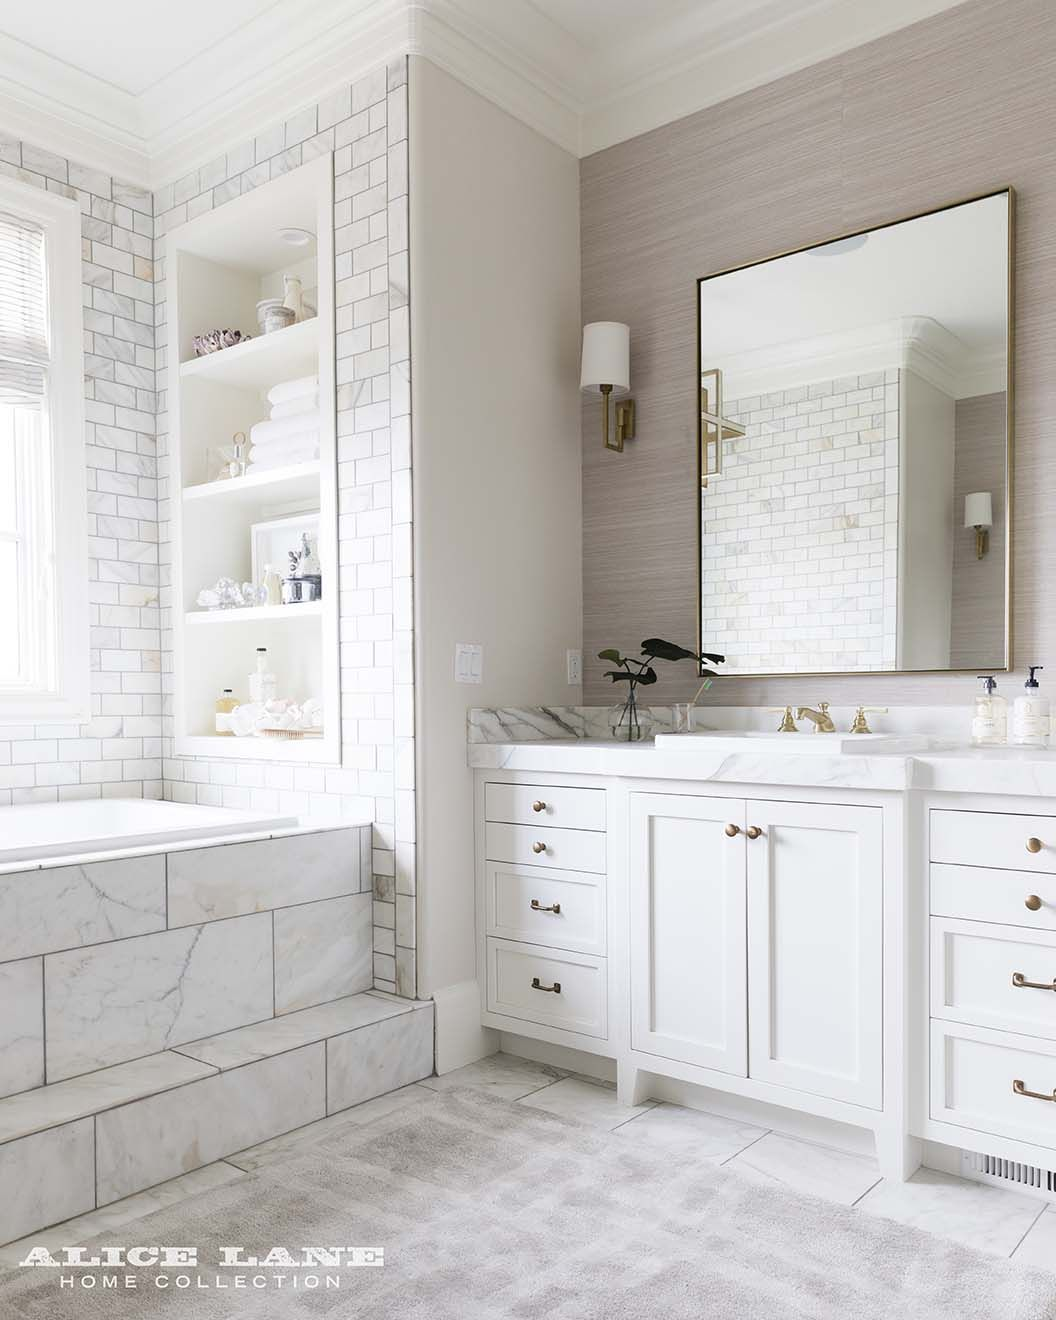 Gorgeous Master Bathroom With Grass Cloth Wall Paper And Marble Tiled Floors And Walls Design B Marble Bathroom Designs White Marble Bathrooms Trendy Bathroom